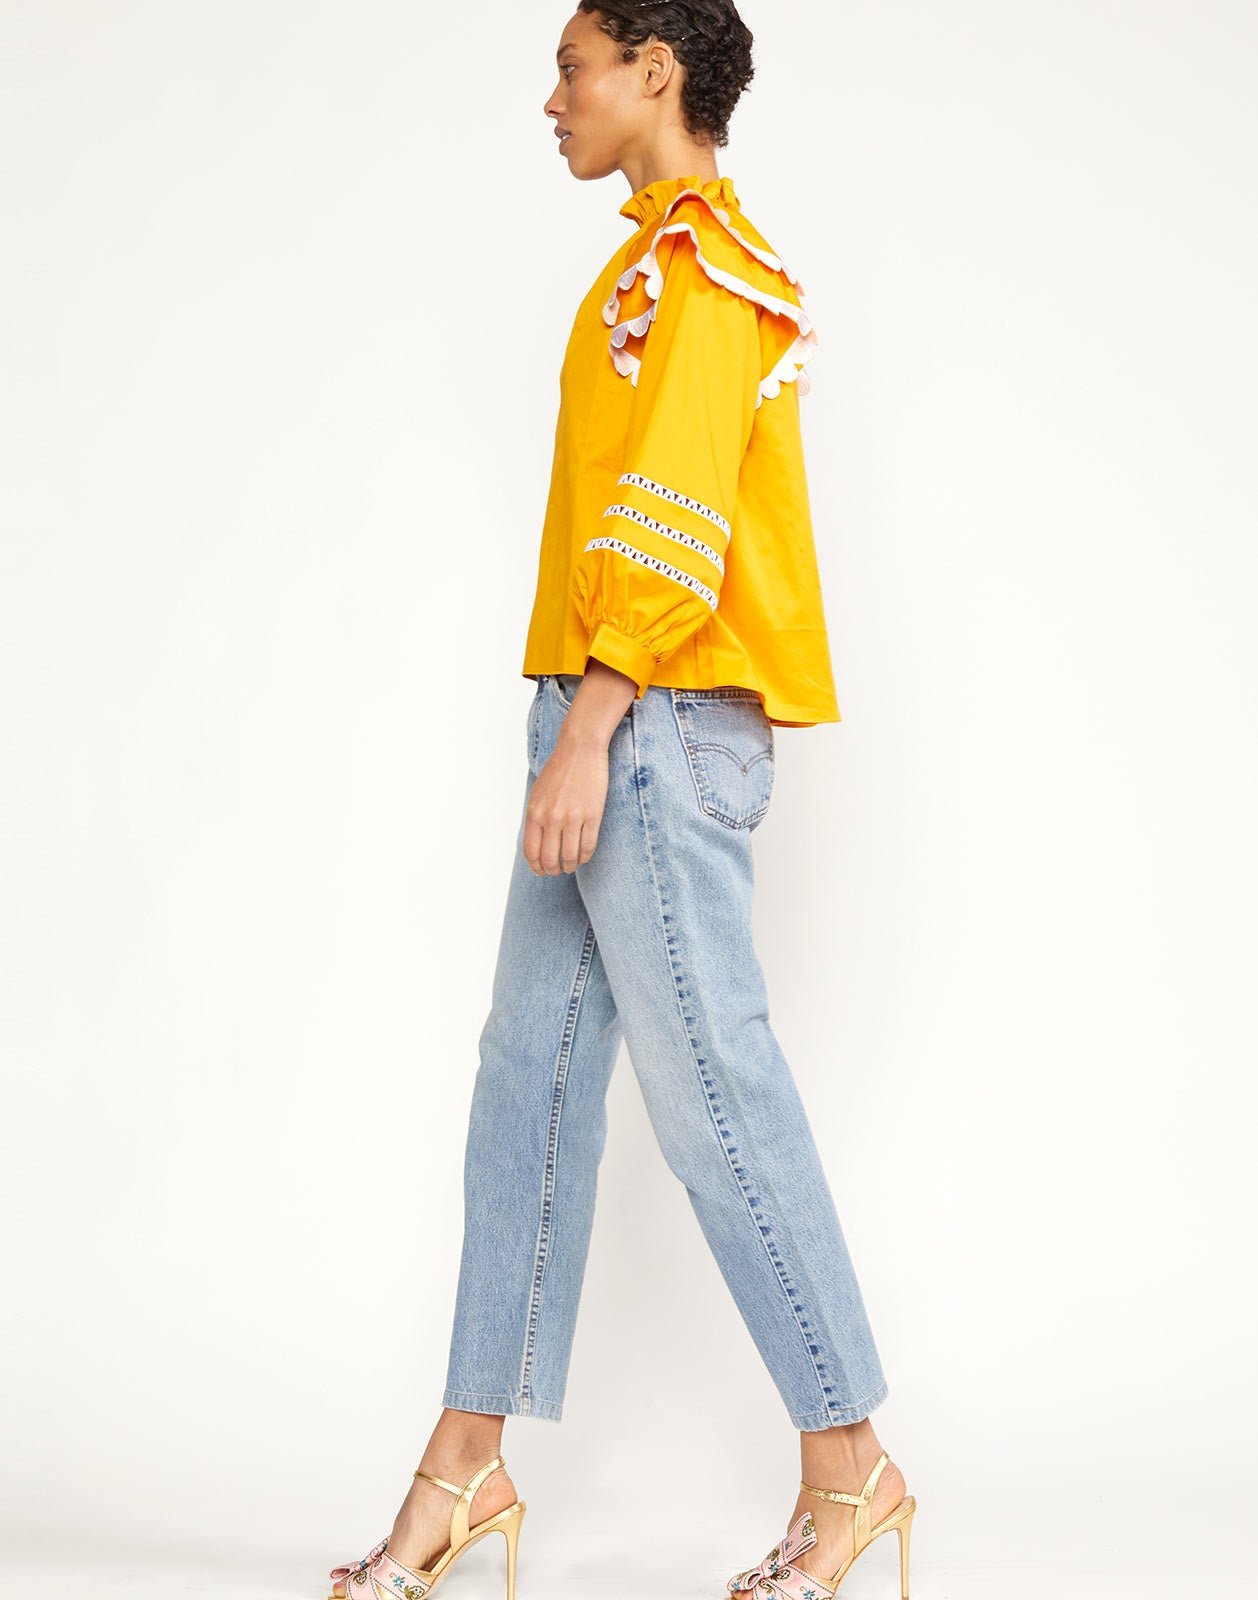 Side view of Elia Scallop Embroidered Top with wide hem and relaxed silhouette